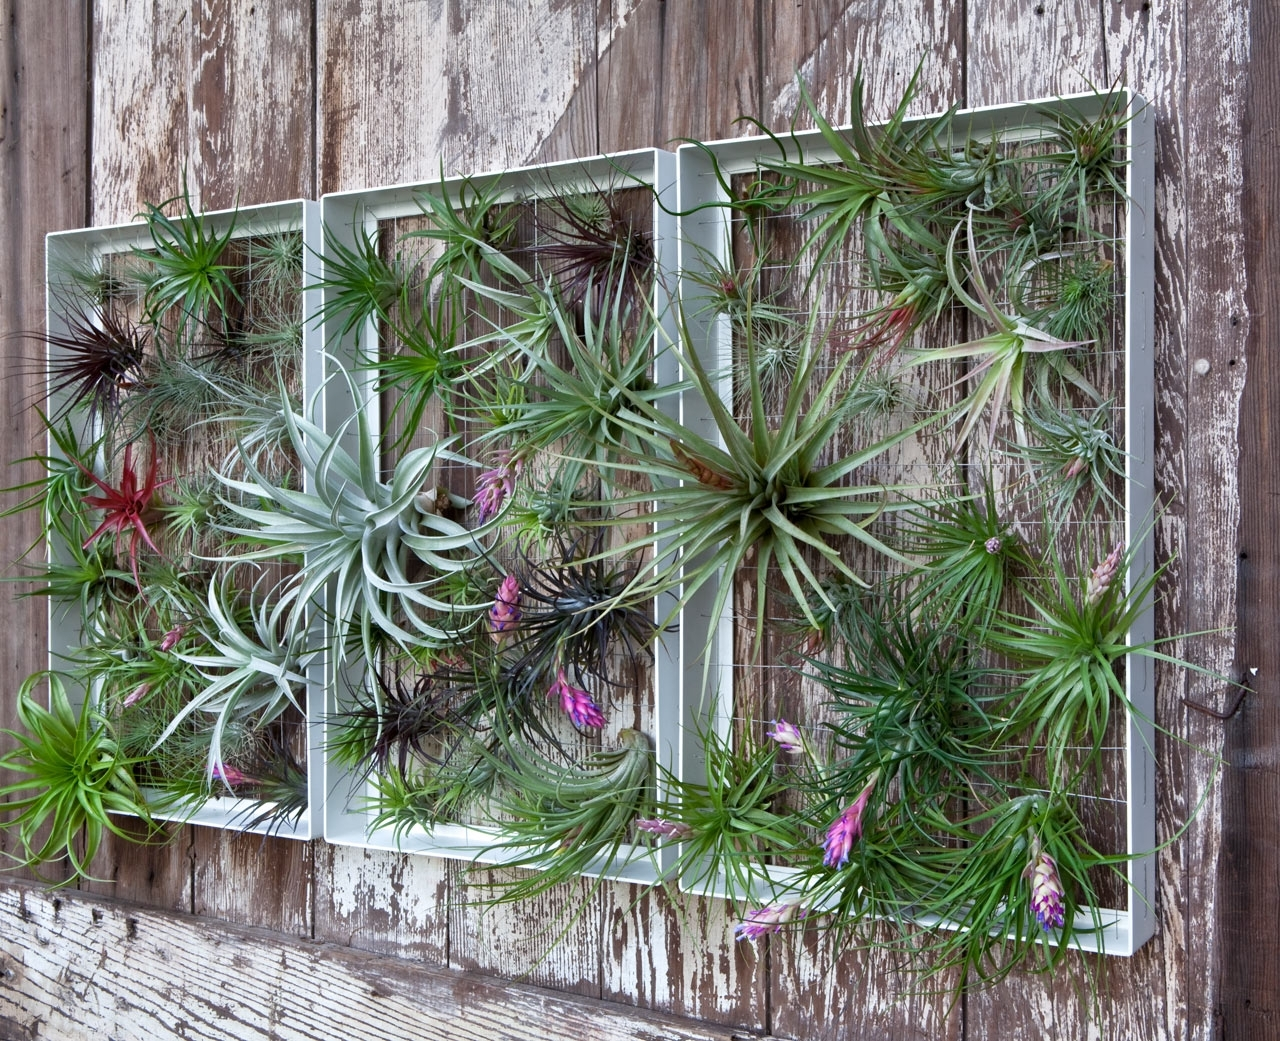 Living Wall Art Vertical Garden Framesairplantman – Design Milk Intended For Well Known Living Wall Art (View 8 of 15)